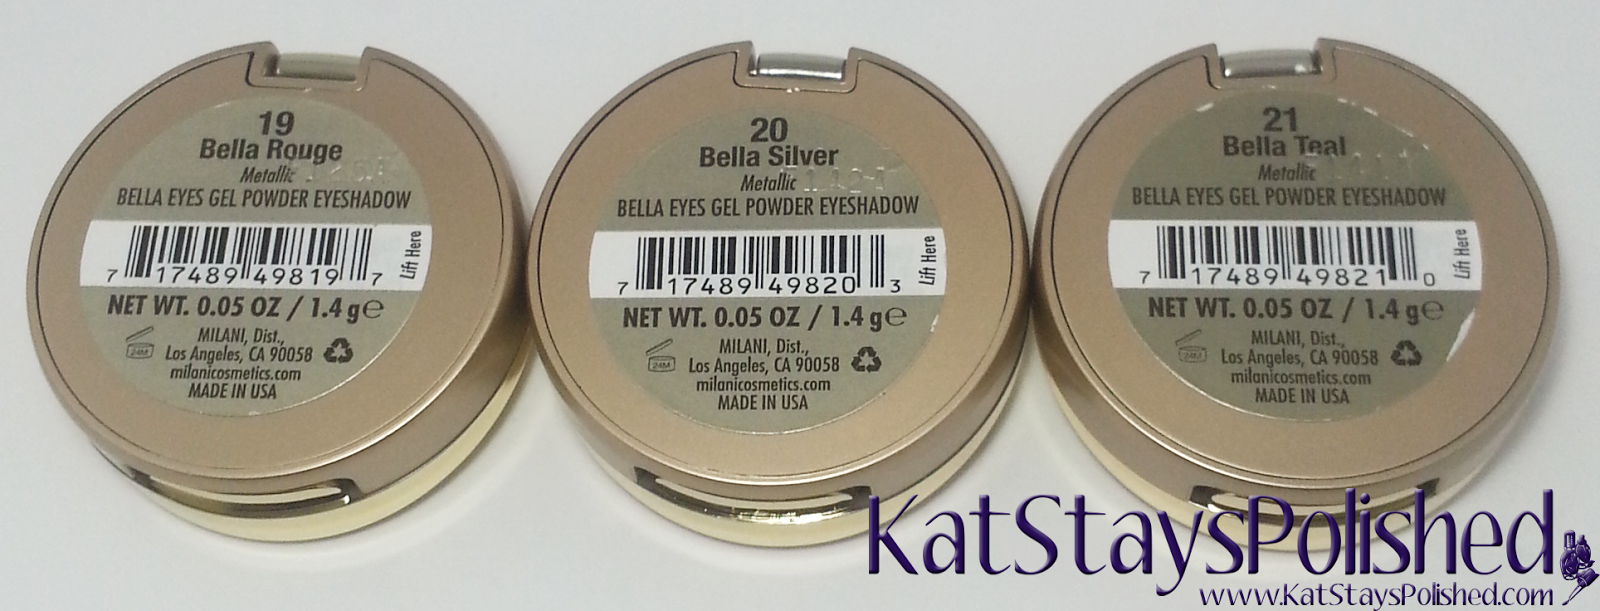 Milani Bella Eyes Gel Powder Eye Shadow - Rouge - Silver - Teal | Kat Stays Polished